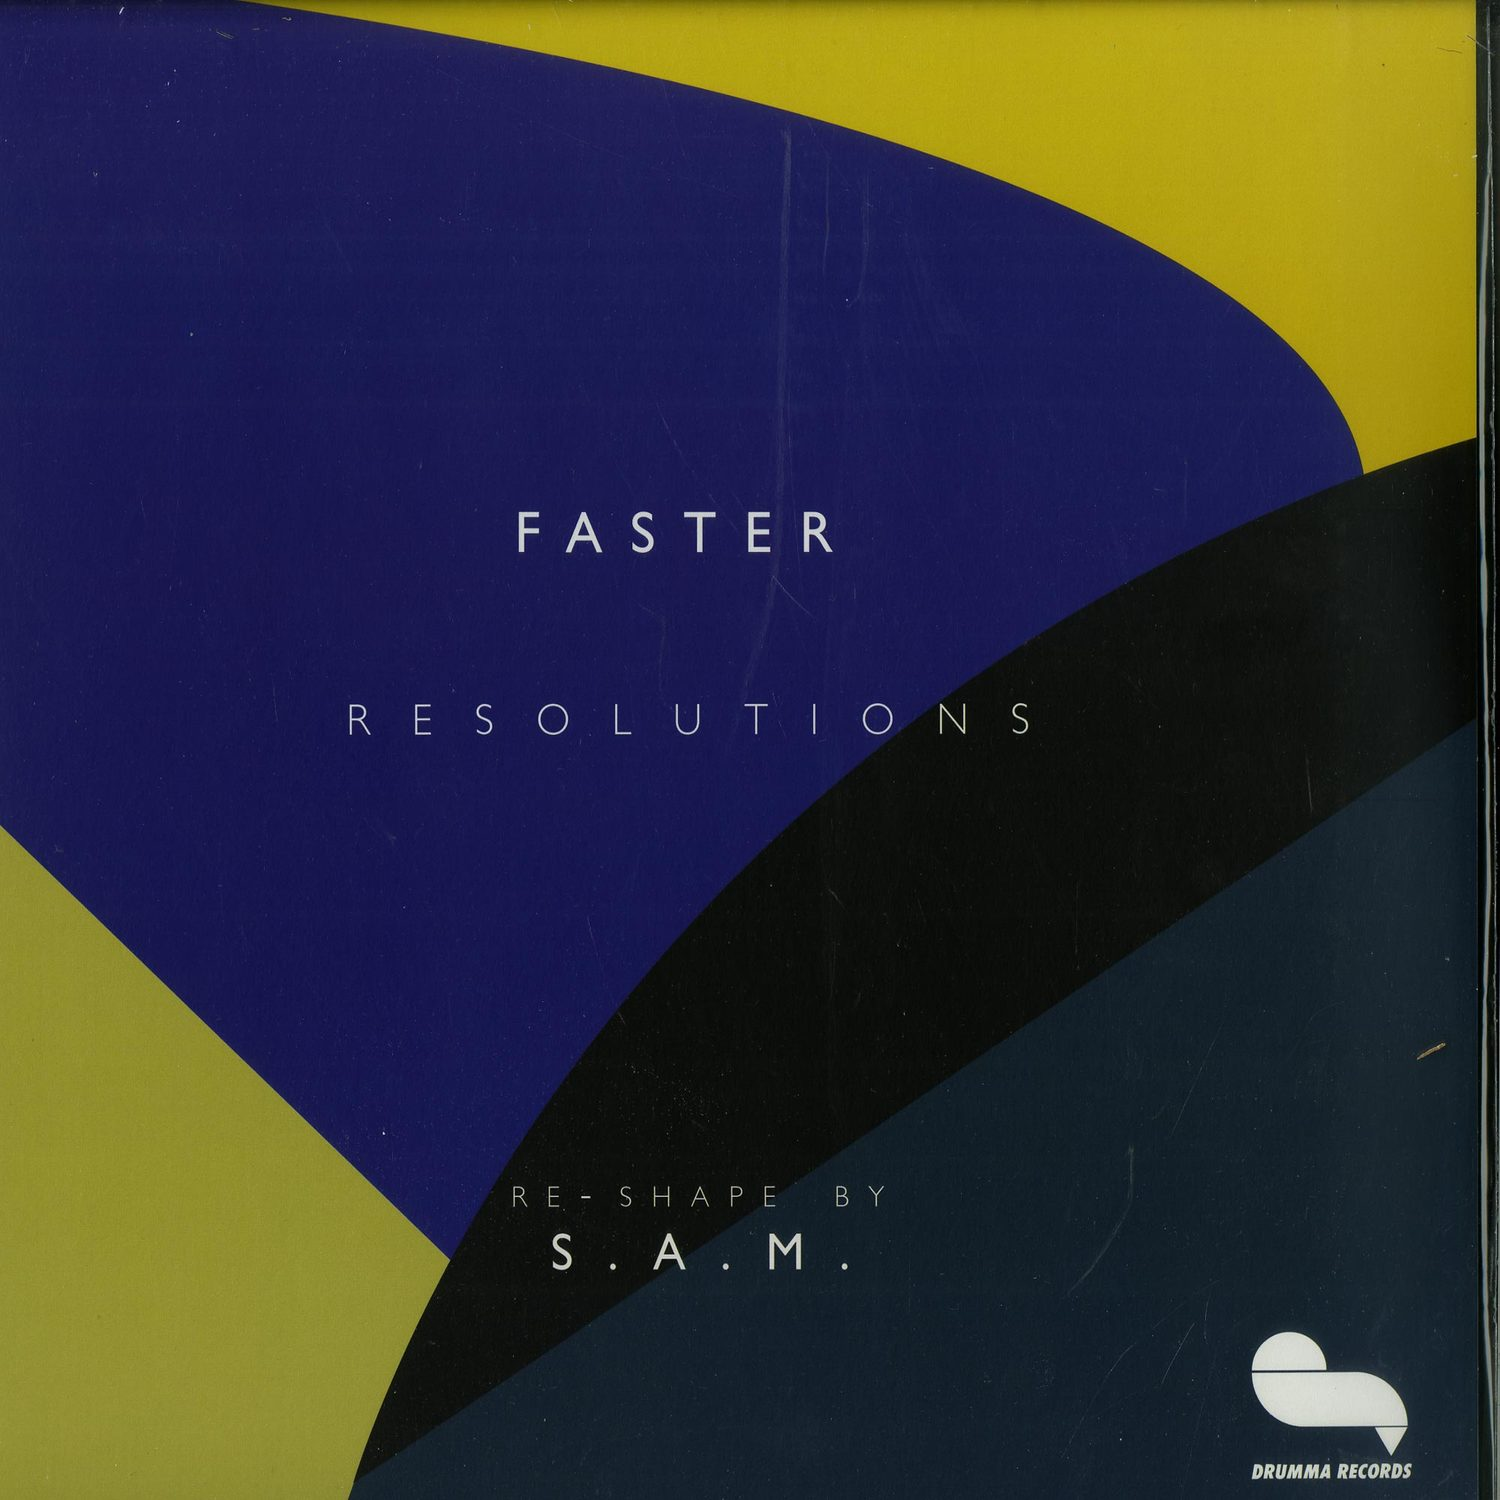 Faster - RESOLUTIONS